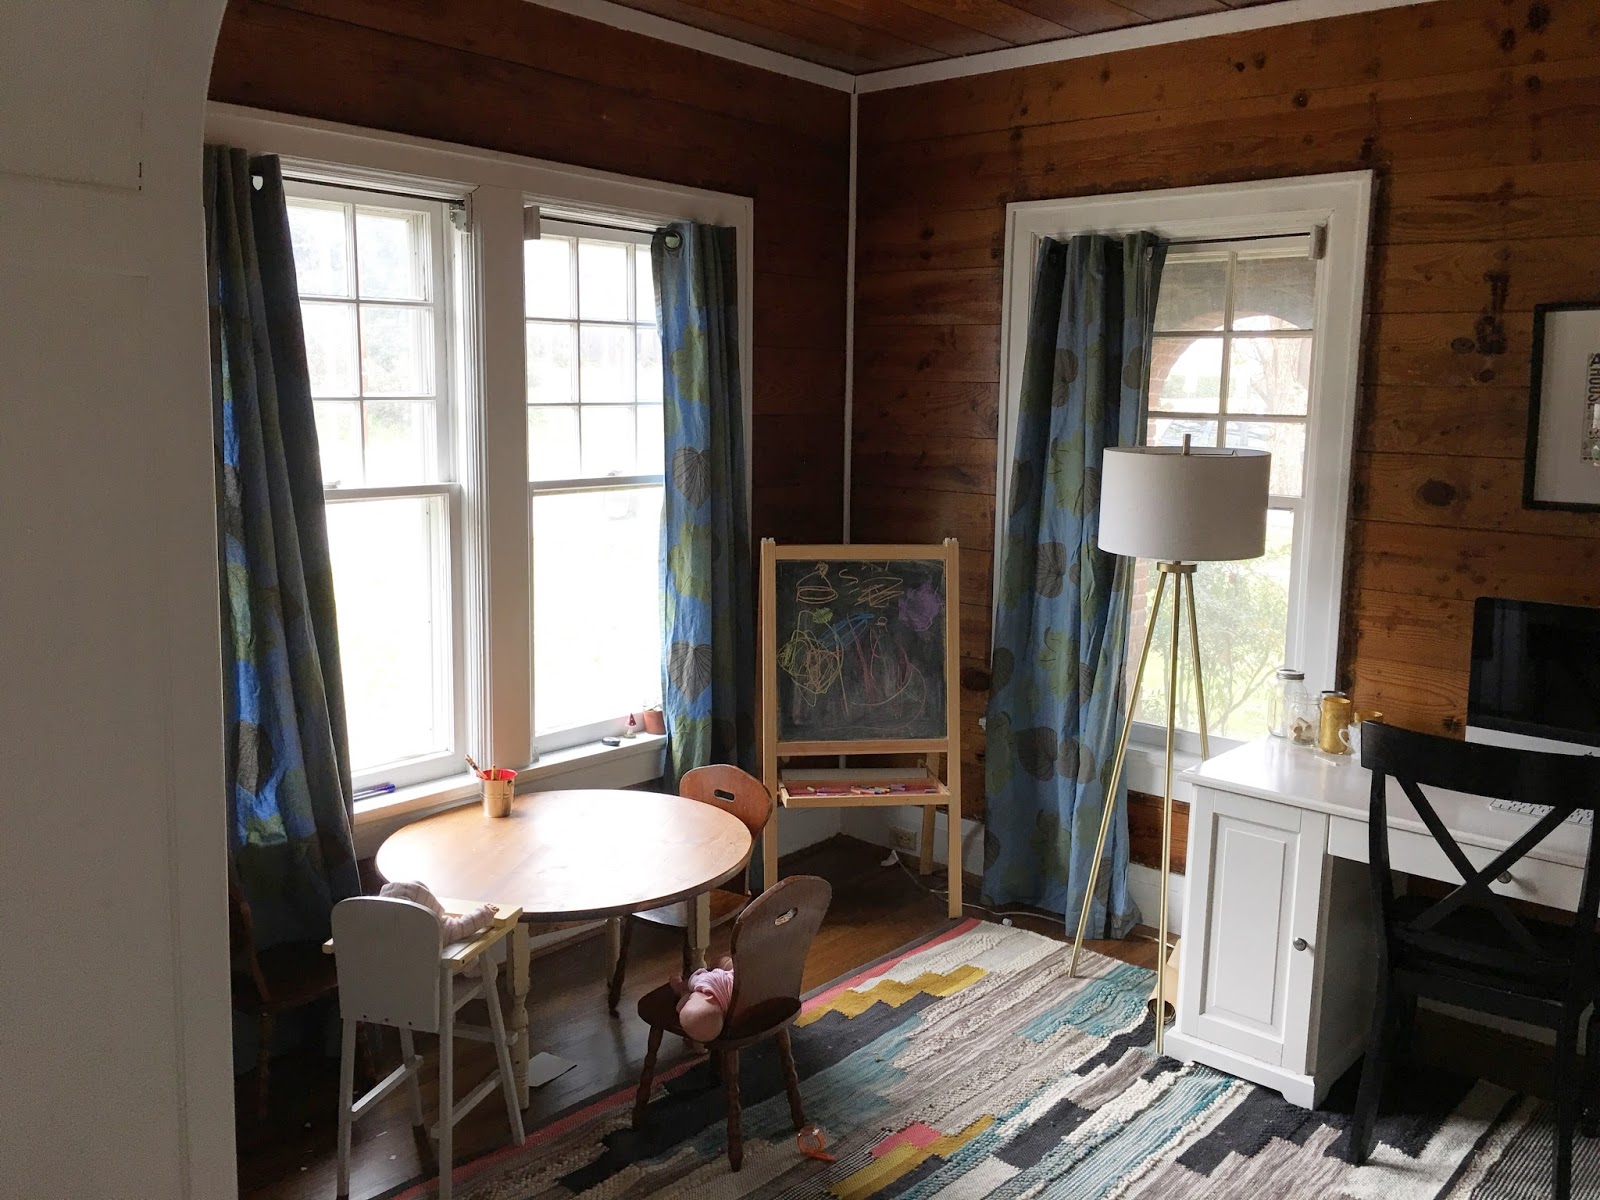 Drop cloth curtains dyed - How To Update Curtains With Dye